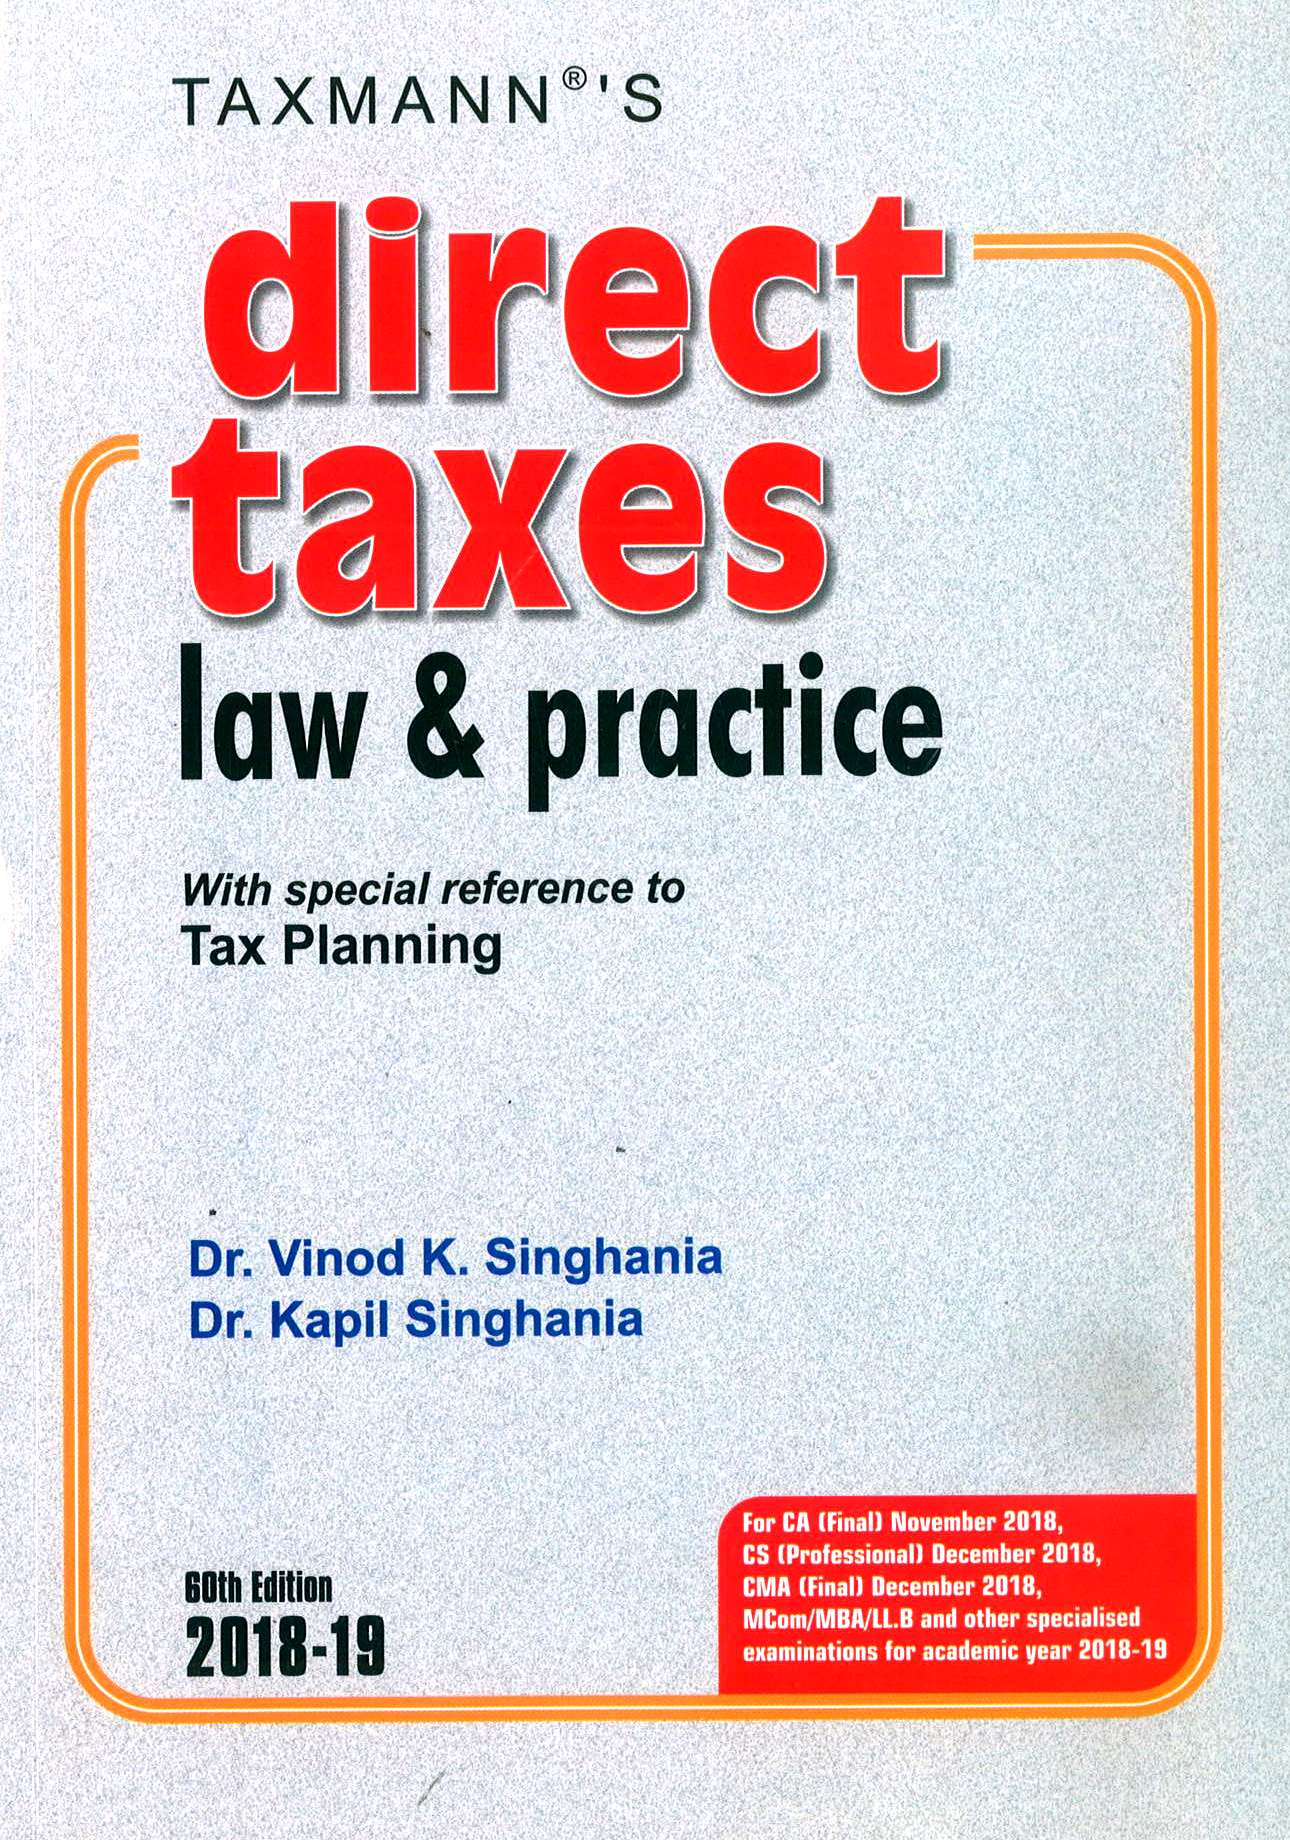 Taxmann's Direct Taxes Law and Practice with special reference to Tax Planning for CA Final, for Nov 2018 Exam by Dr. Vinod K. Singhania and Dr. Kapil Singhania (Taxmann's Publishing) Edition 60th, 2018-19